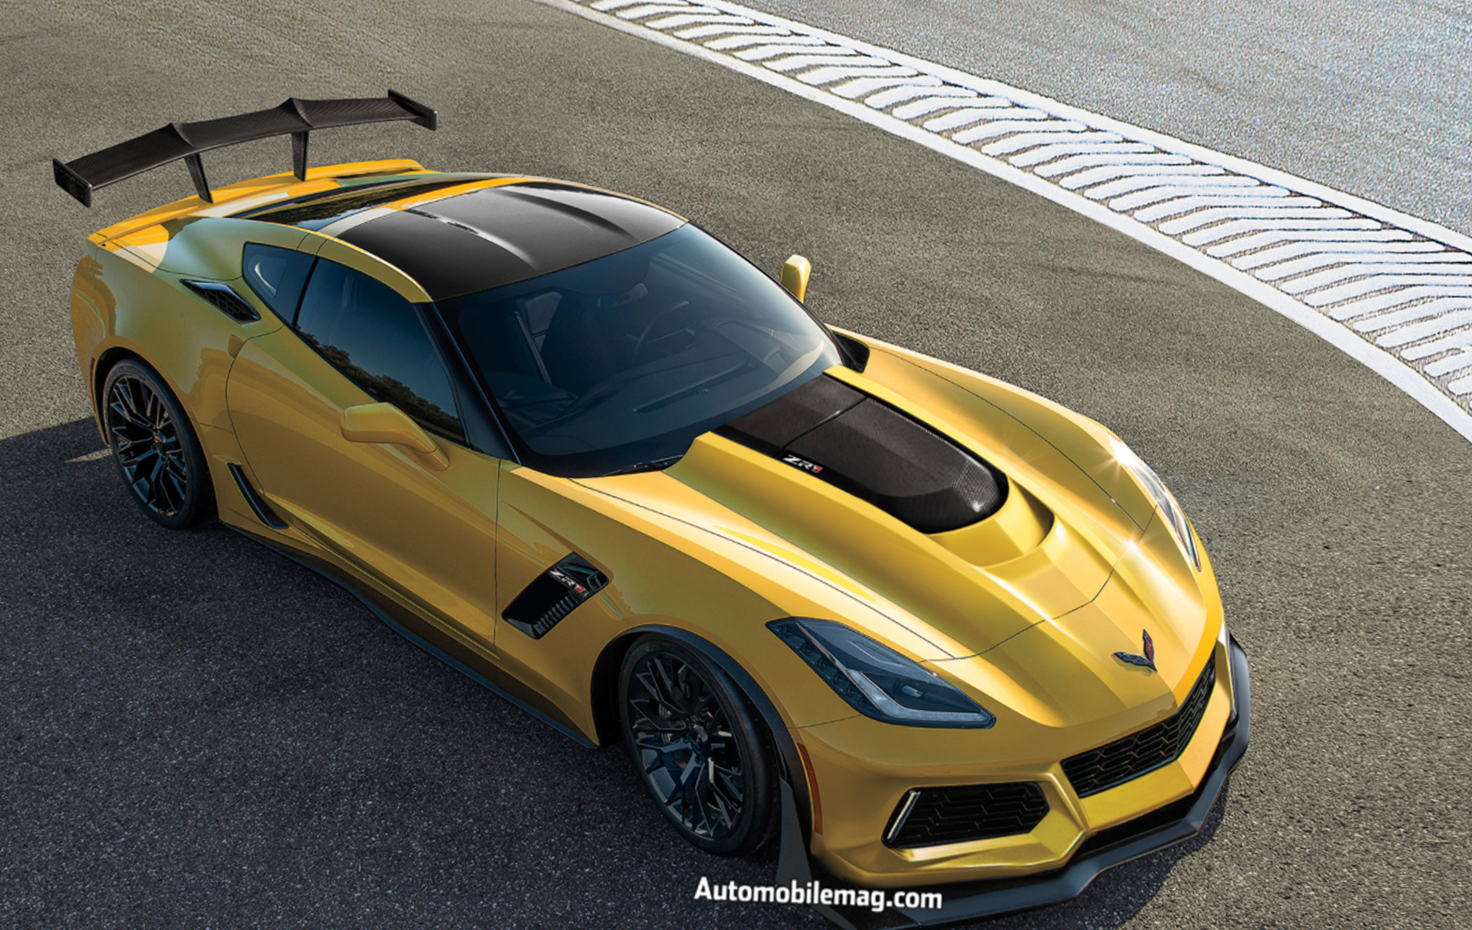 2019 Corvette Zora >> 2019 Corvette ZR1 leak reveals 750 horsepower